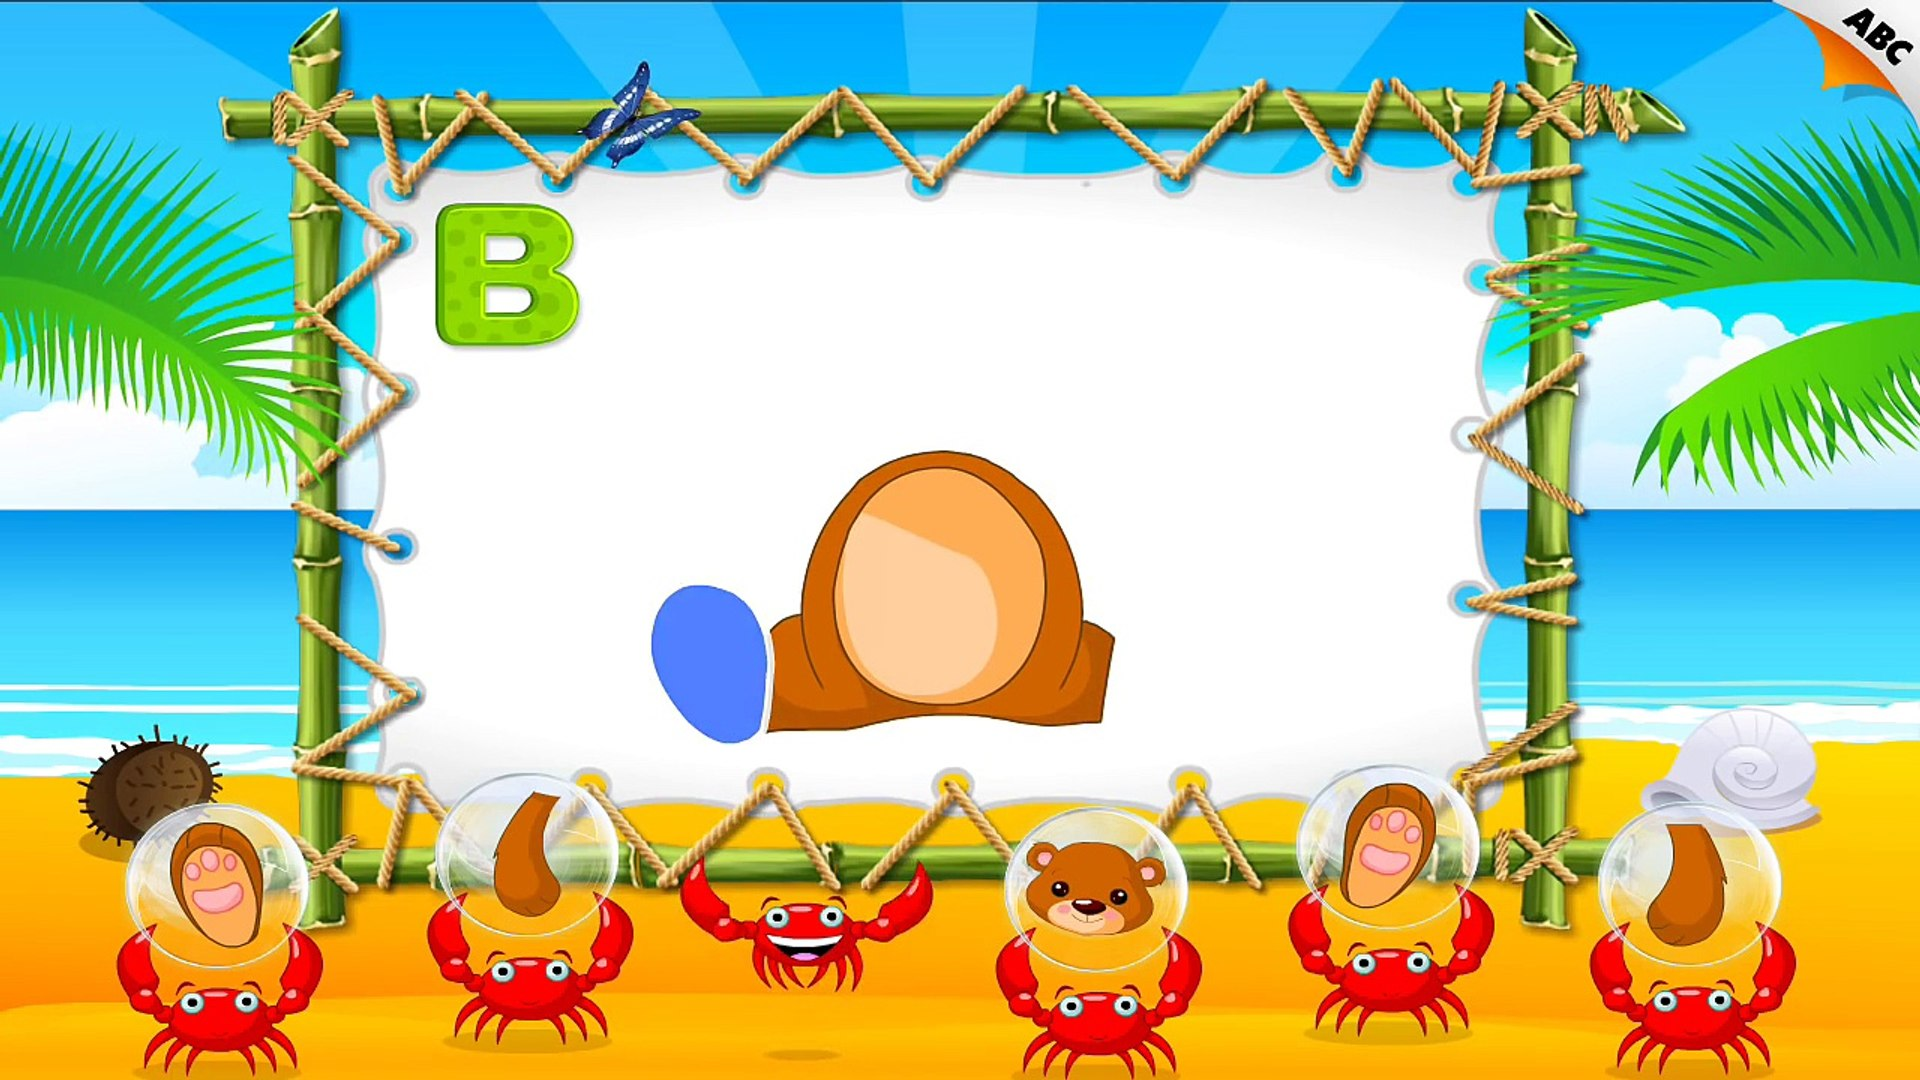 Kids learning, Kids Alphabet Aquarium School by CFC s.r.o. education games for children and toddlers